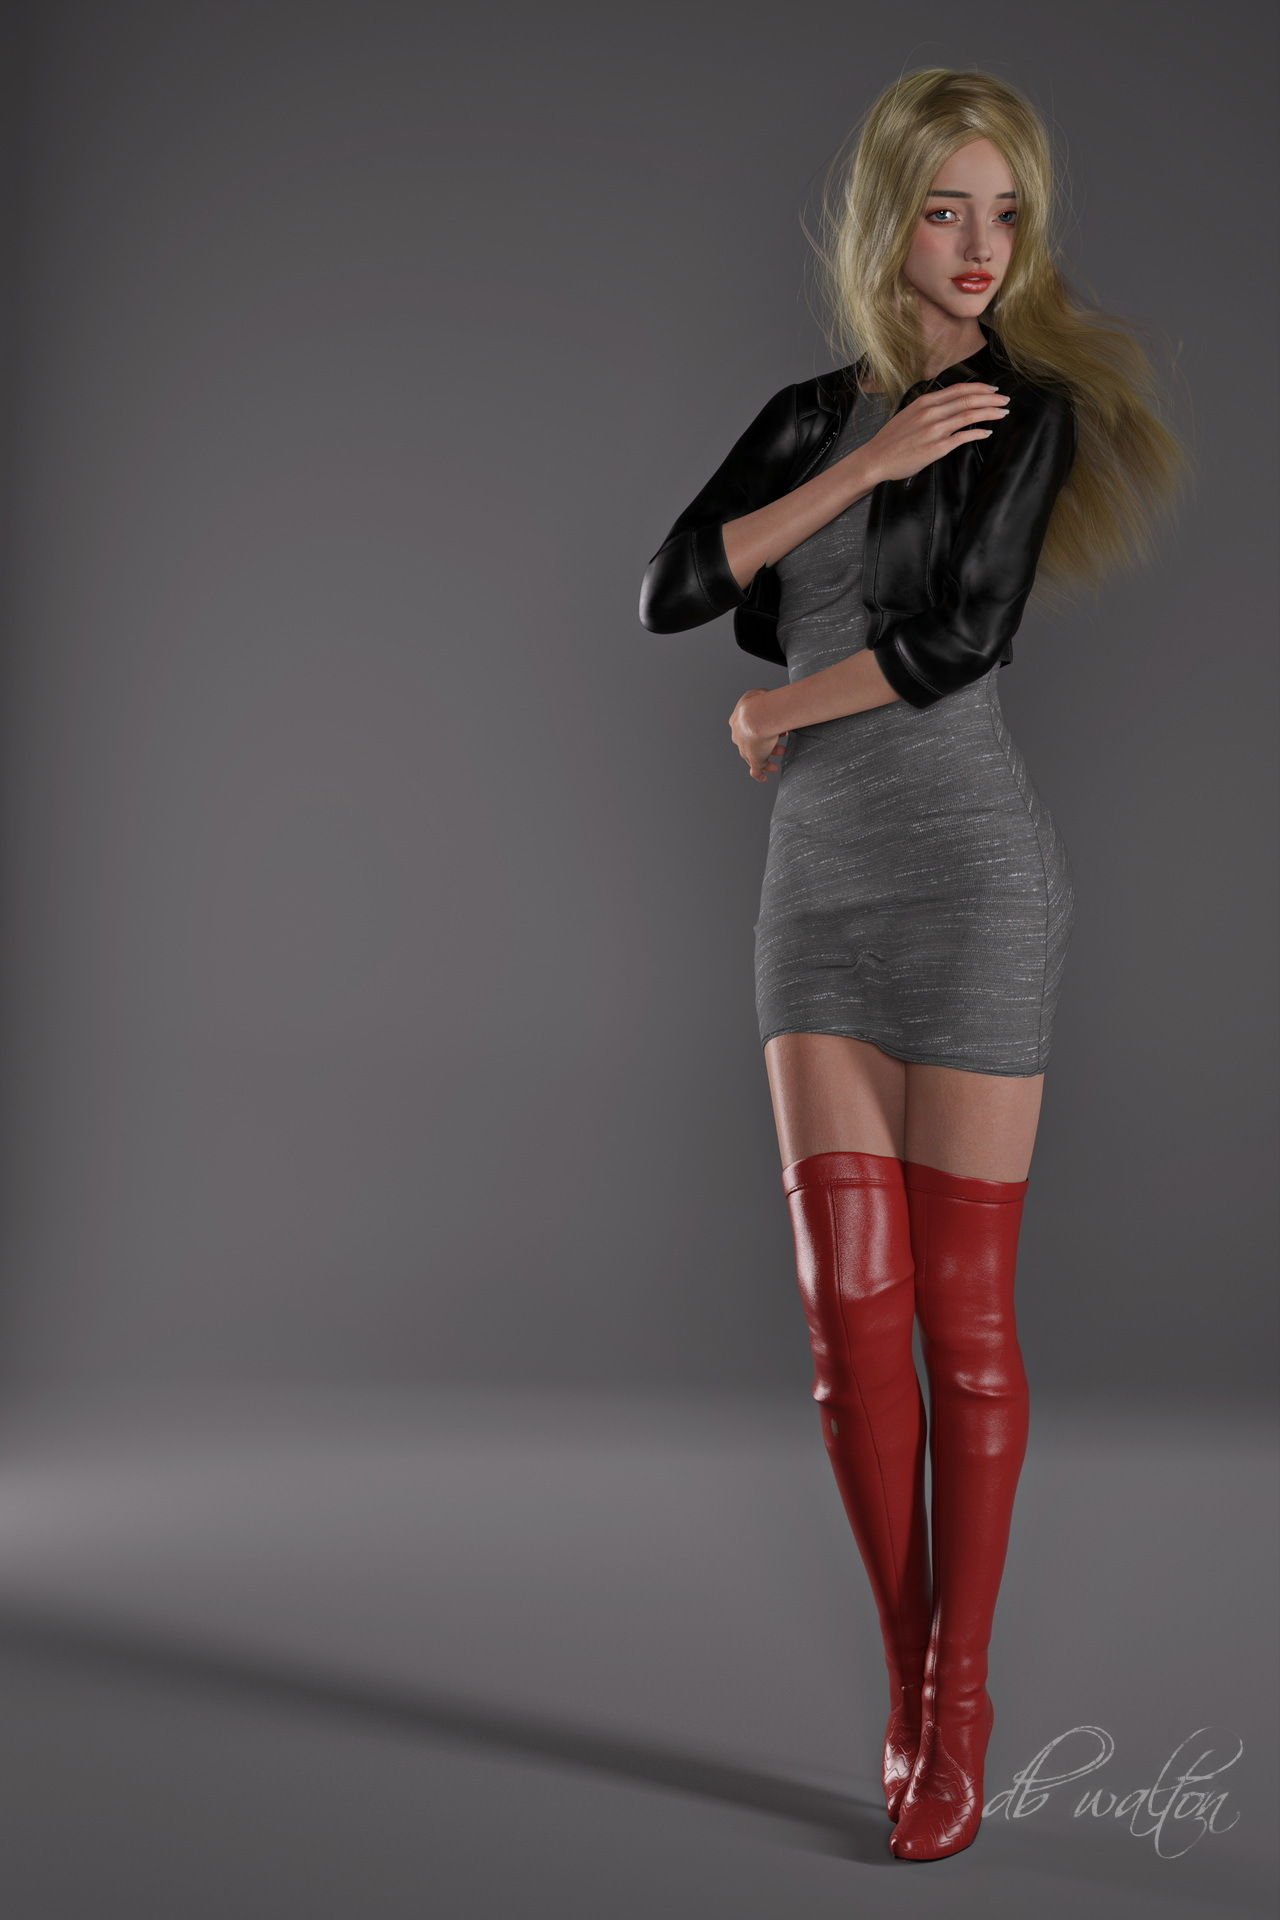 Red Boots 1 by dbwalton